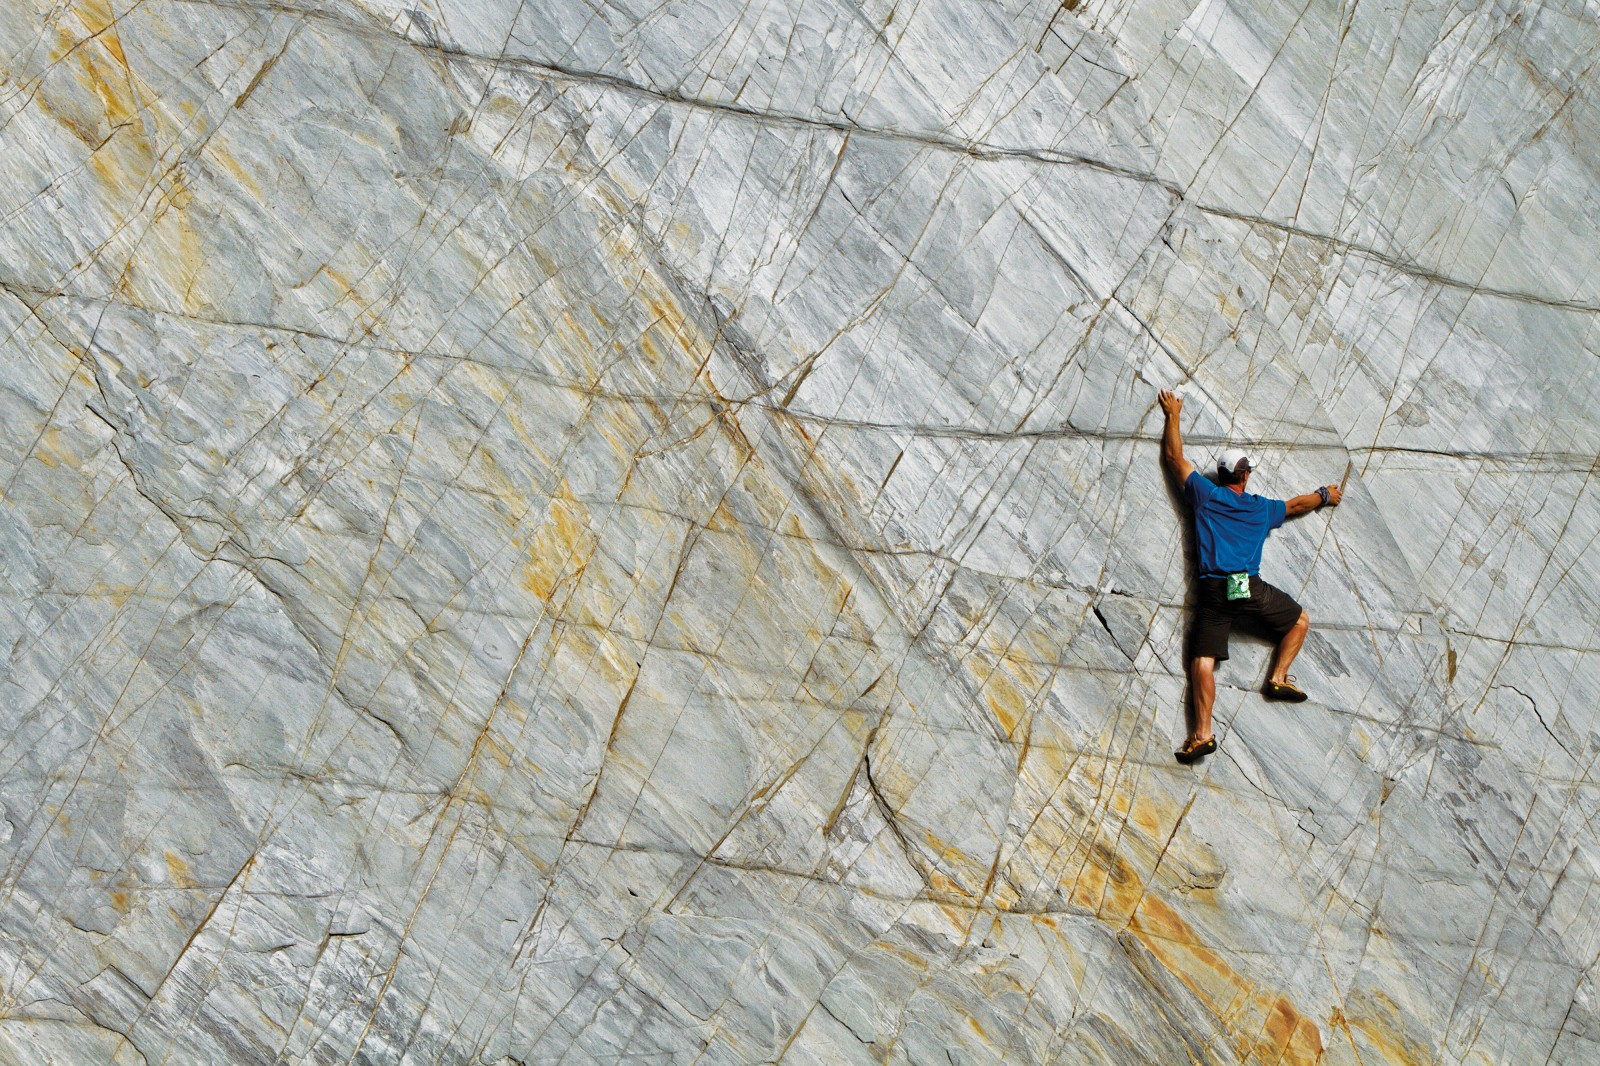 Jamie Vinton-Boot explores a seemingly blank wall of schist on the Eye Tooth slabs at the head of the Otoko Valley. The level of concentration required when climbing without ropes can alter one's mental state. The surrounding environment, and even an appreciation of time, is lost to the minutiae of tasks before the climber. Far from the misconception that climbers are adrenaline junkies, traversing a wall such as this requires precision, concentration and judgment far beyond that employed in everyday life.